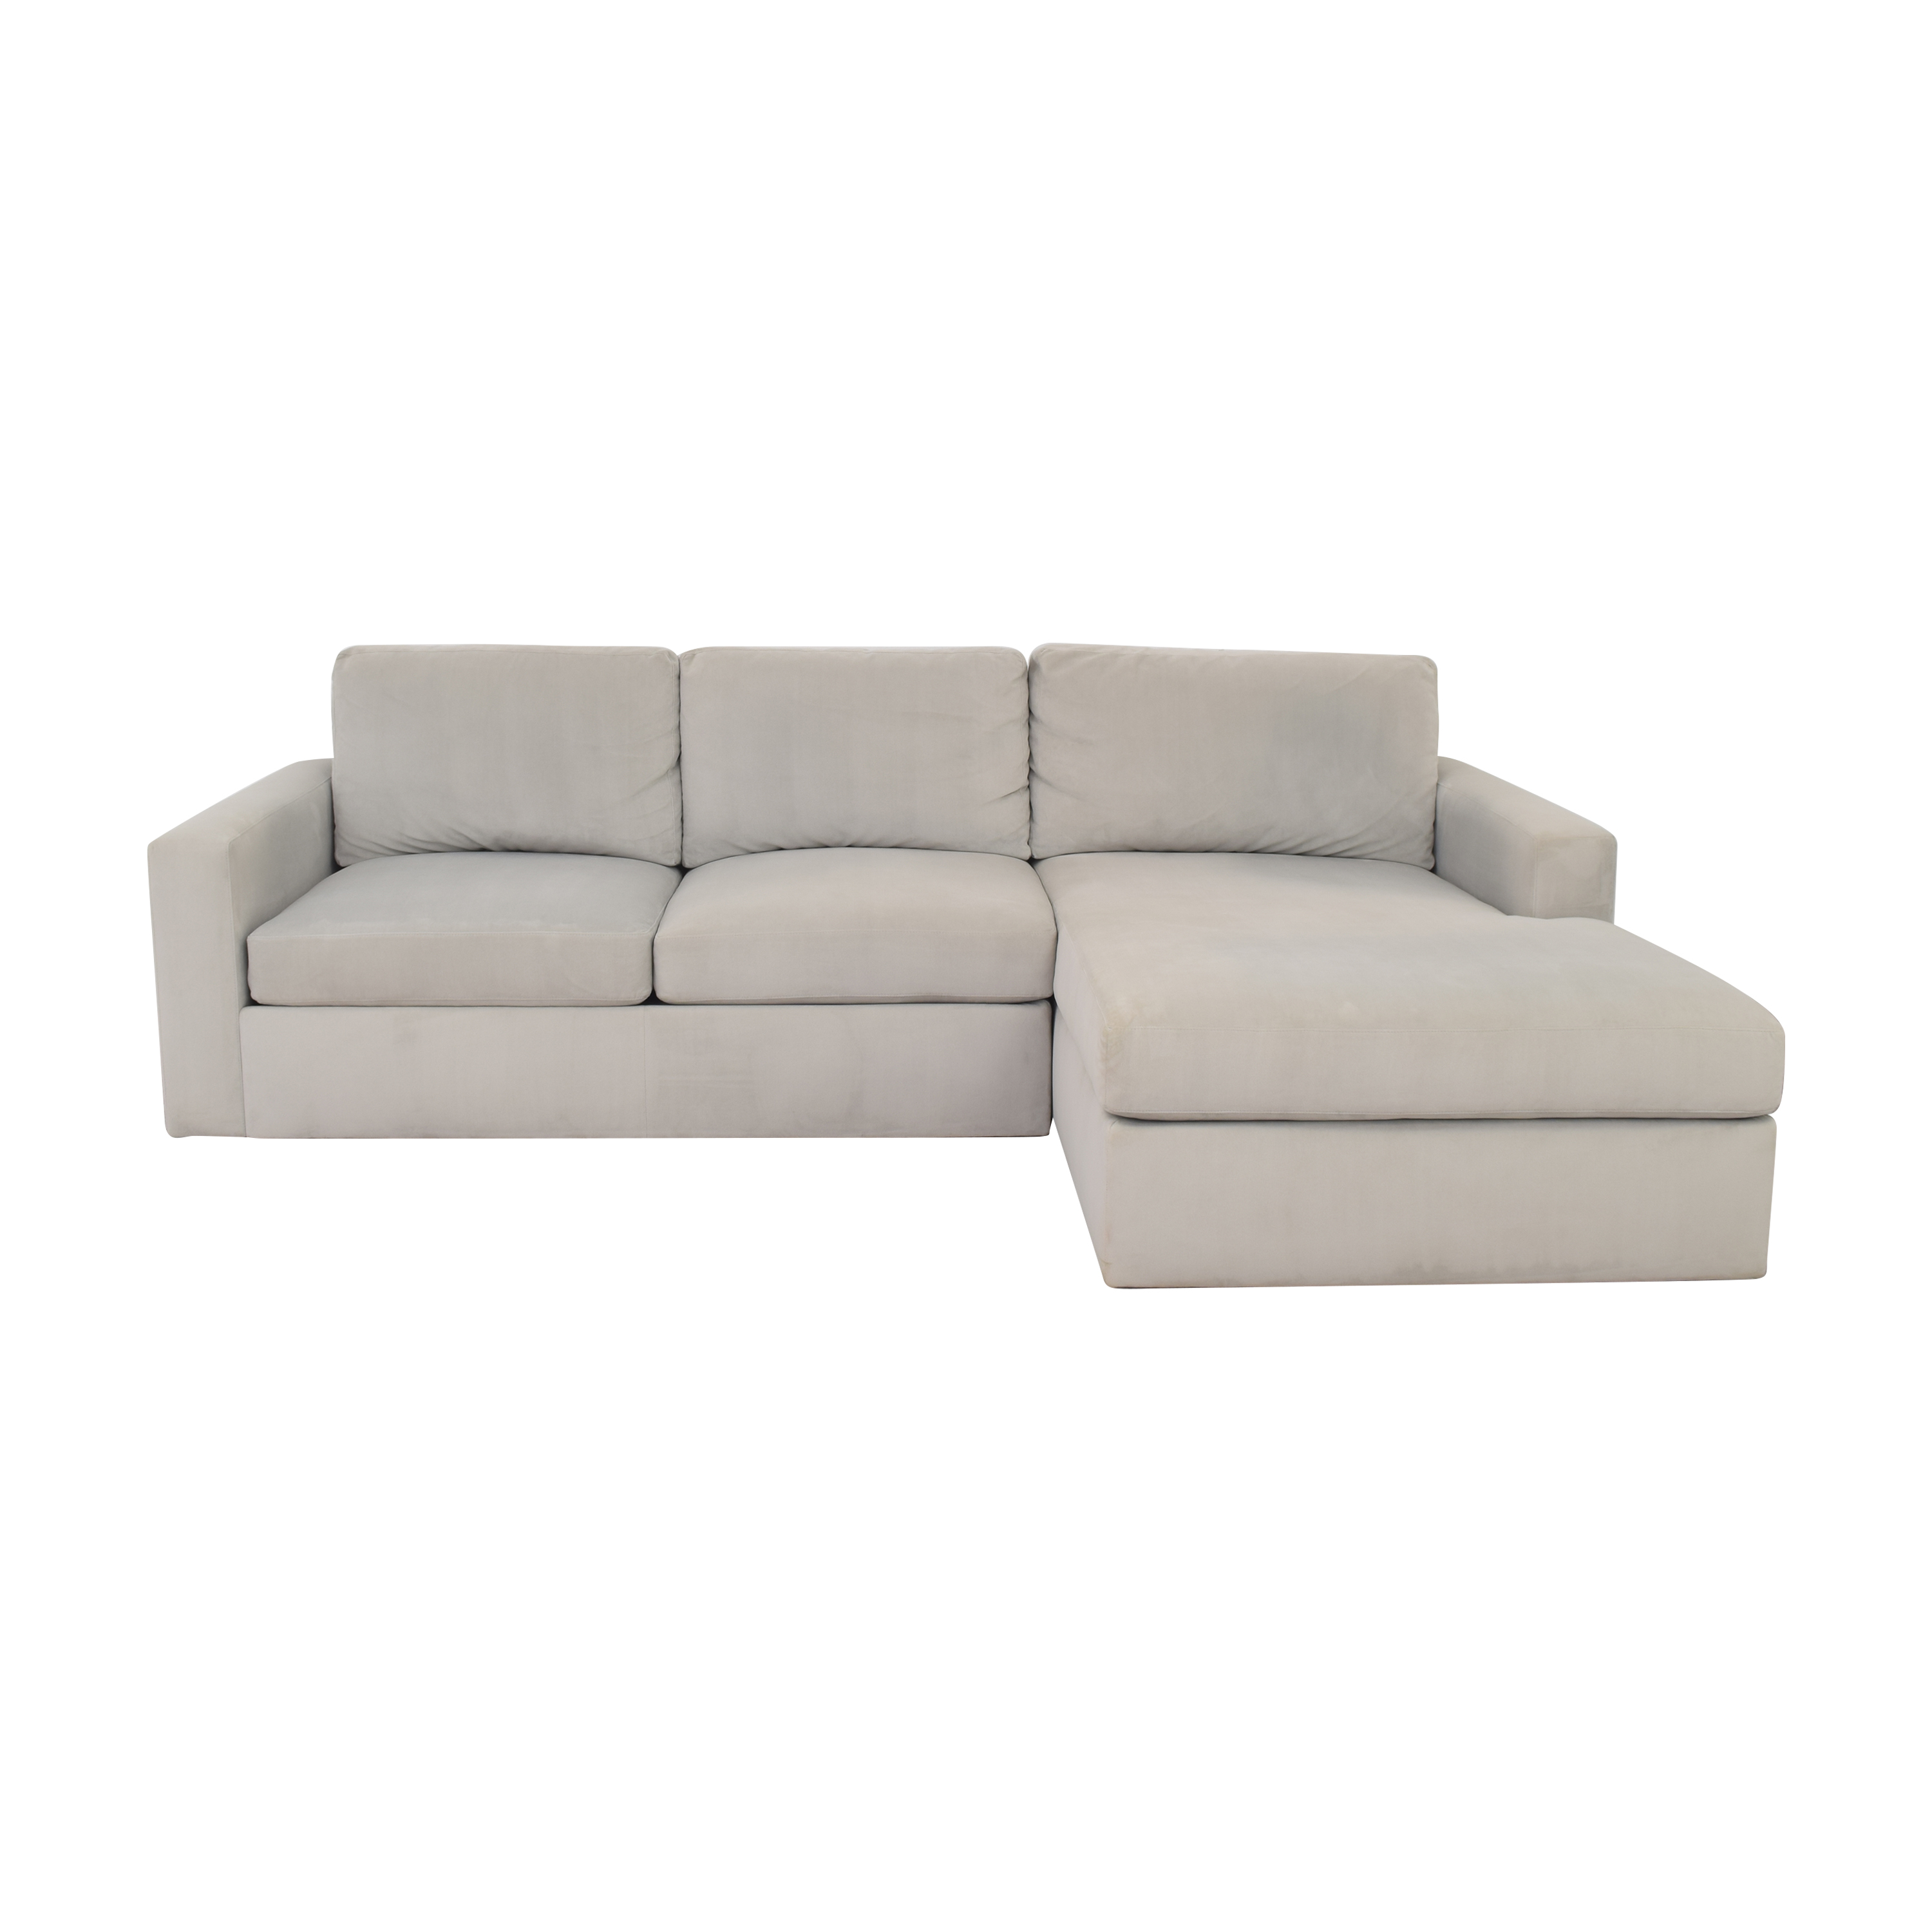 44 Off Room Board Room Board Modern Sectional Sofa With Chaise Sofas